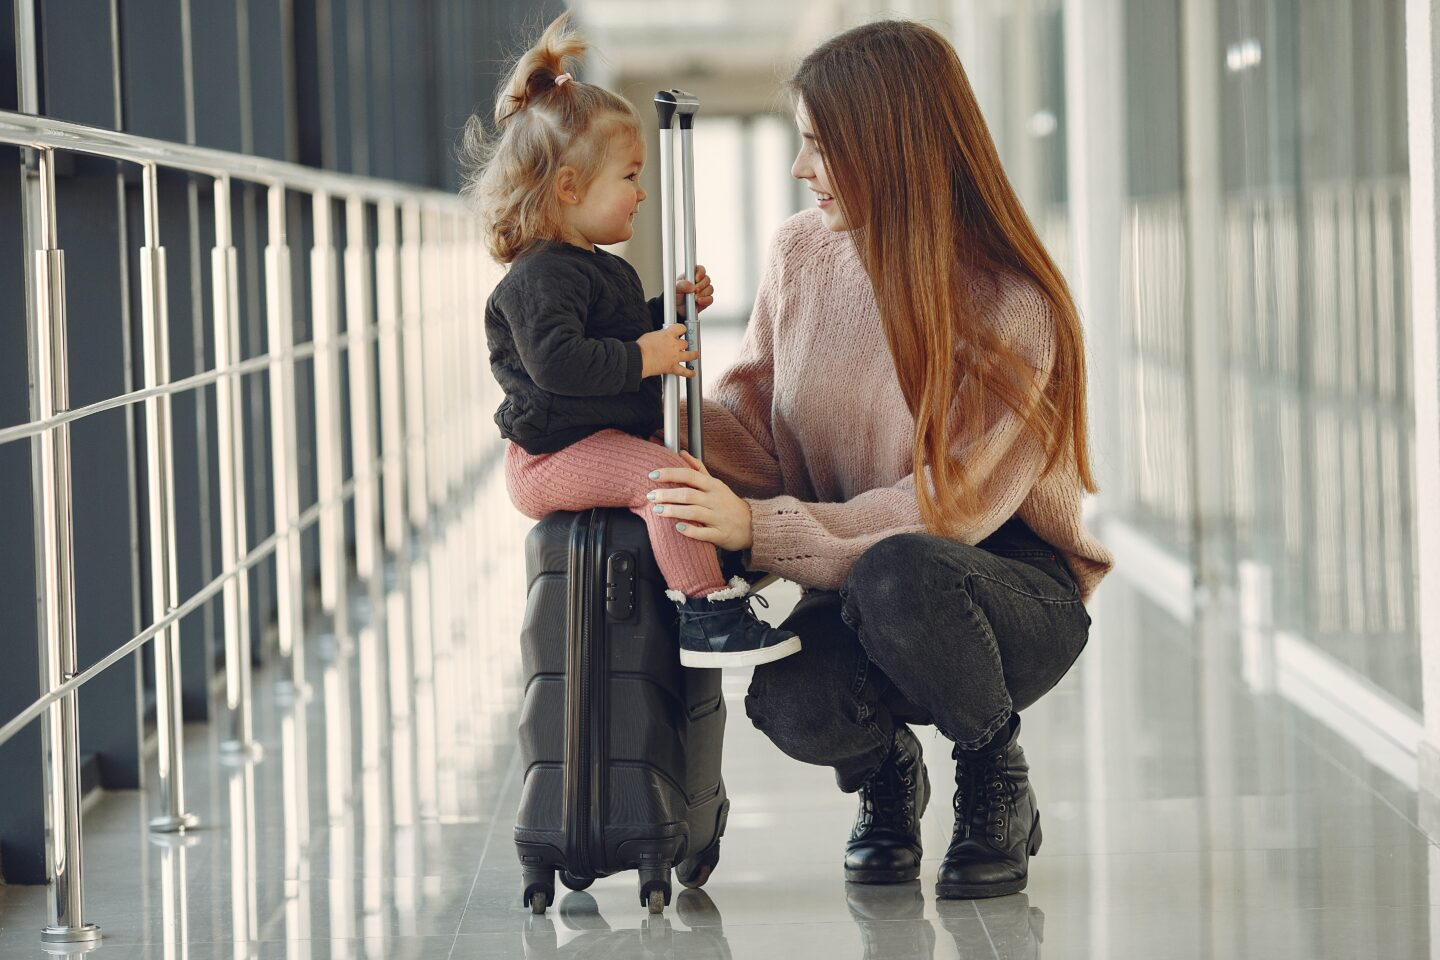 Mum and daughter with suitcase at airport